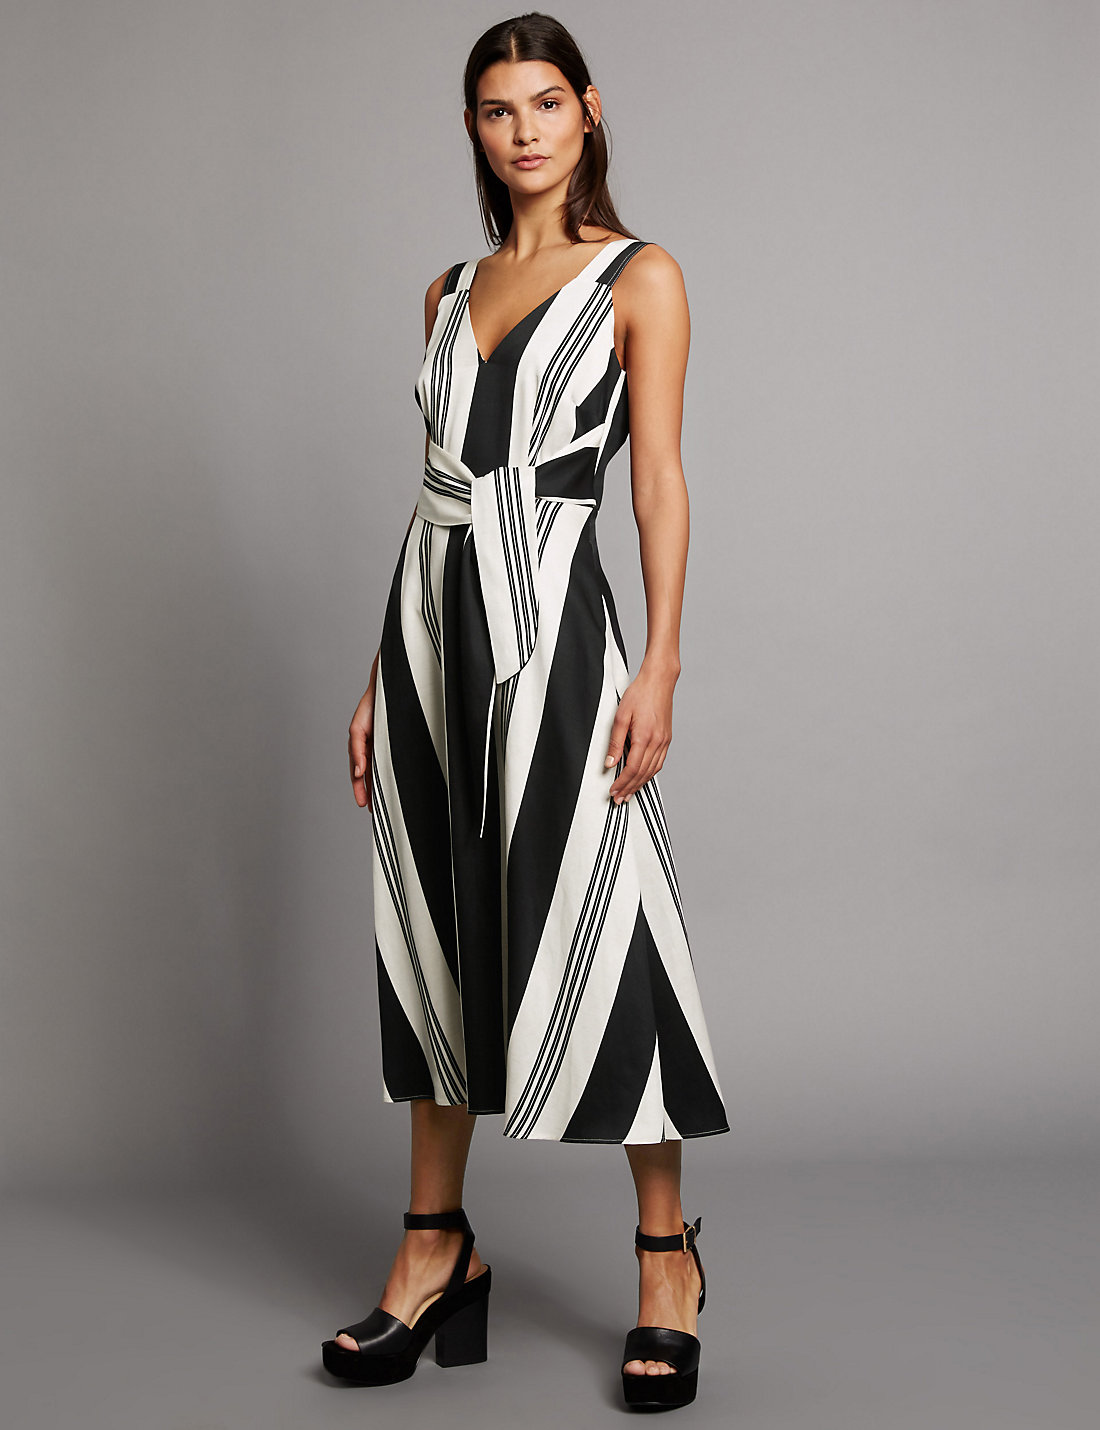 M&S  £65.00 Love monochrome, Love this dress. Great for a city wedding, you can keep your shoes black or add a flash of colour, red, orange and yellow would work beautifully.